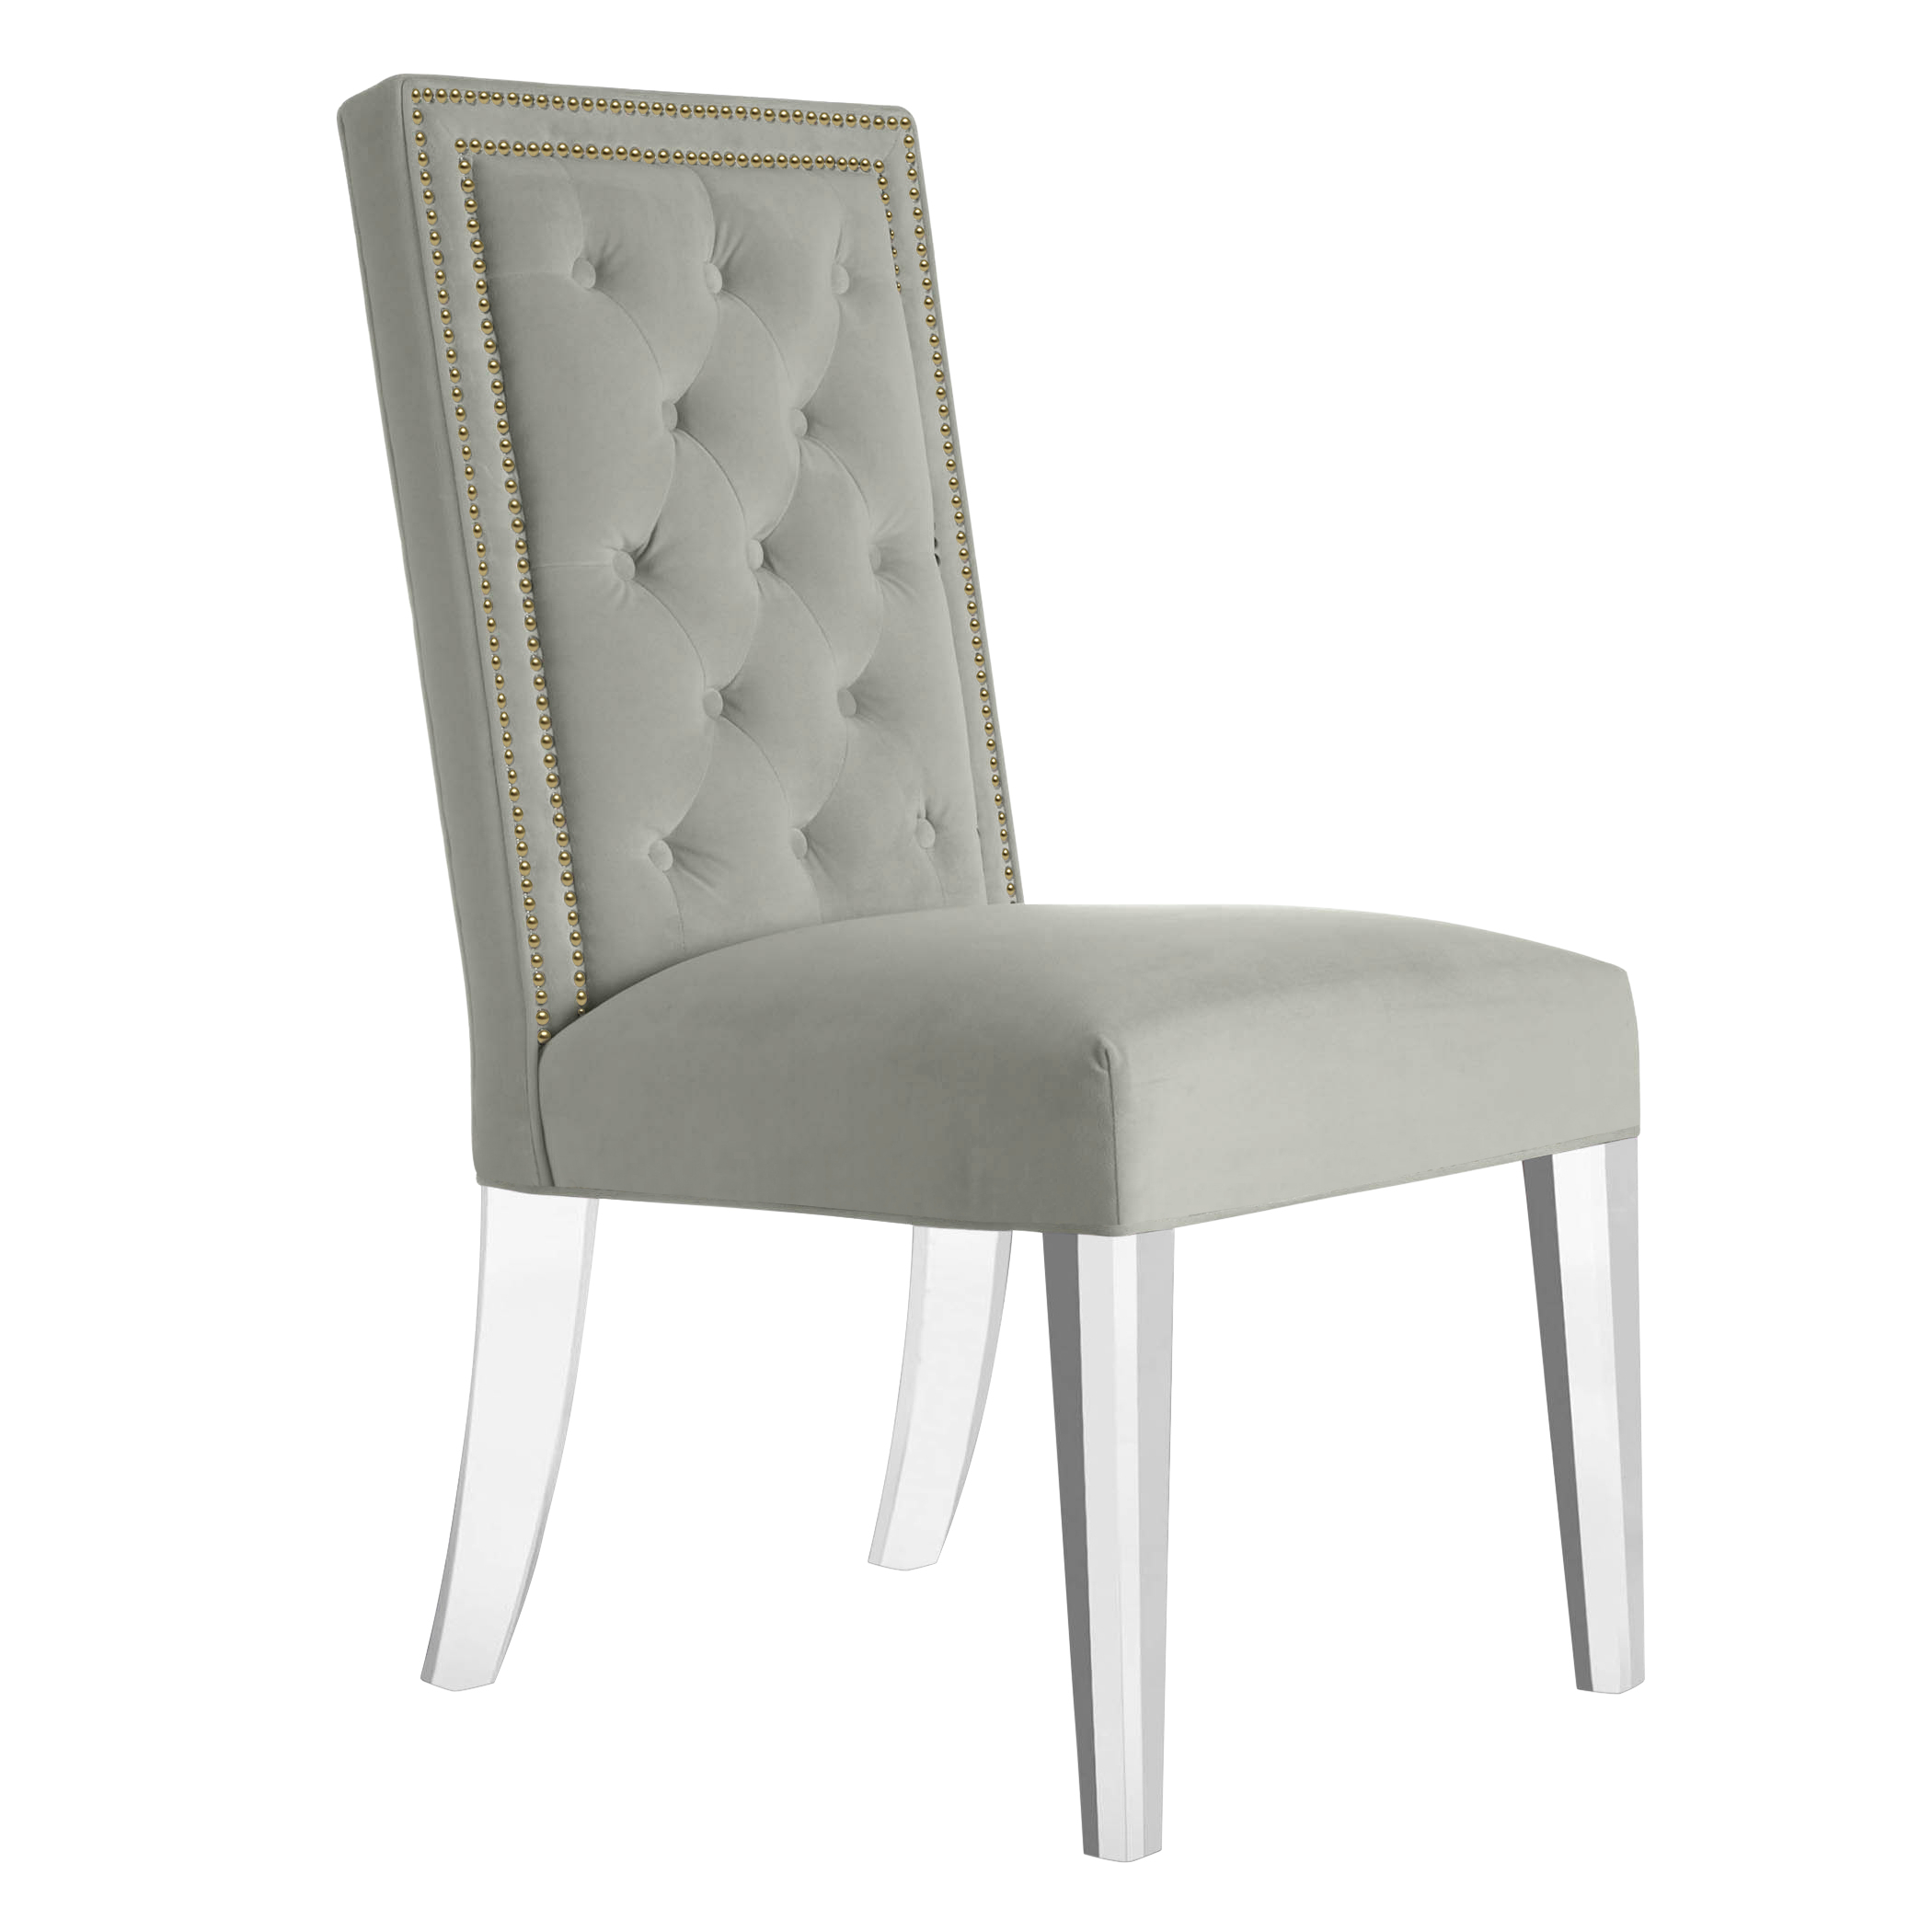 Maxwell Dining Chair With Nailheads - Acrylic